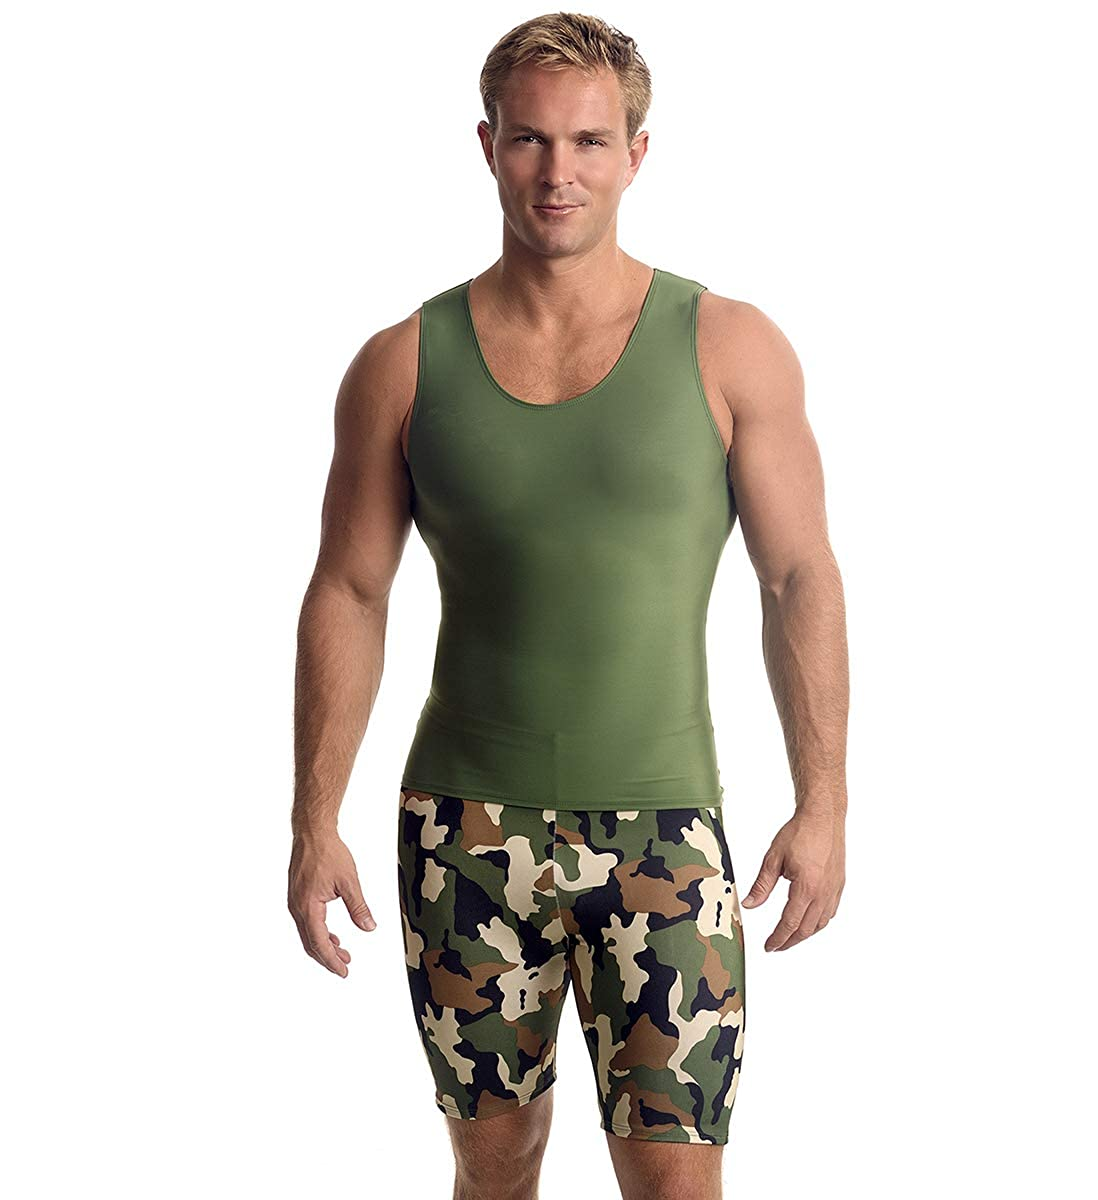 Insta Slim ISPRO Slimming Muscle Tank Top Shapewear Compression Shirt for Men